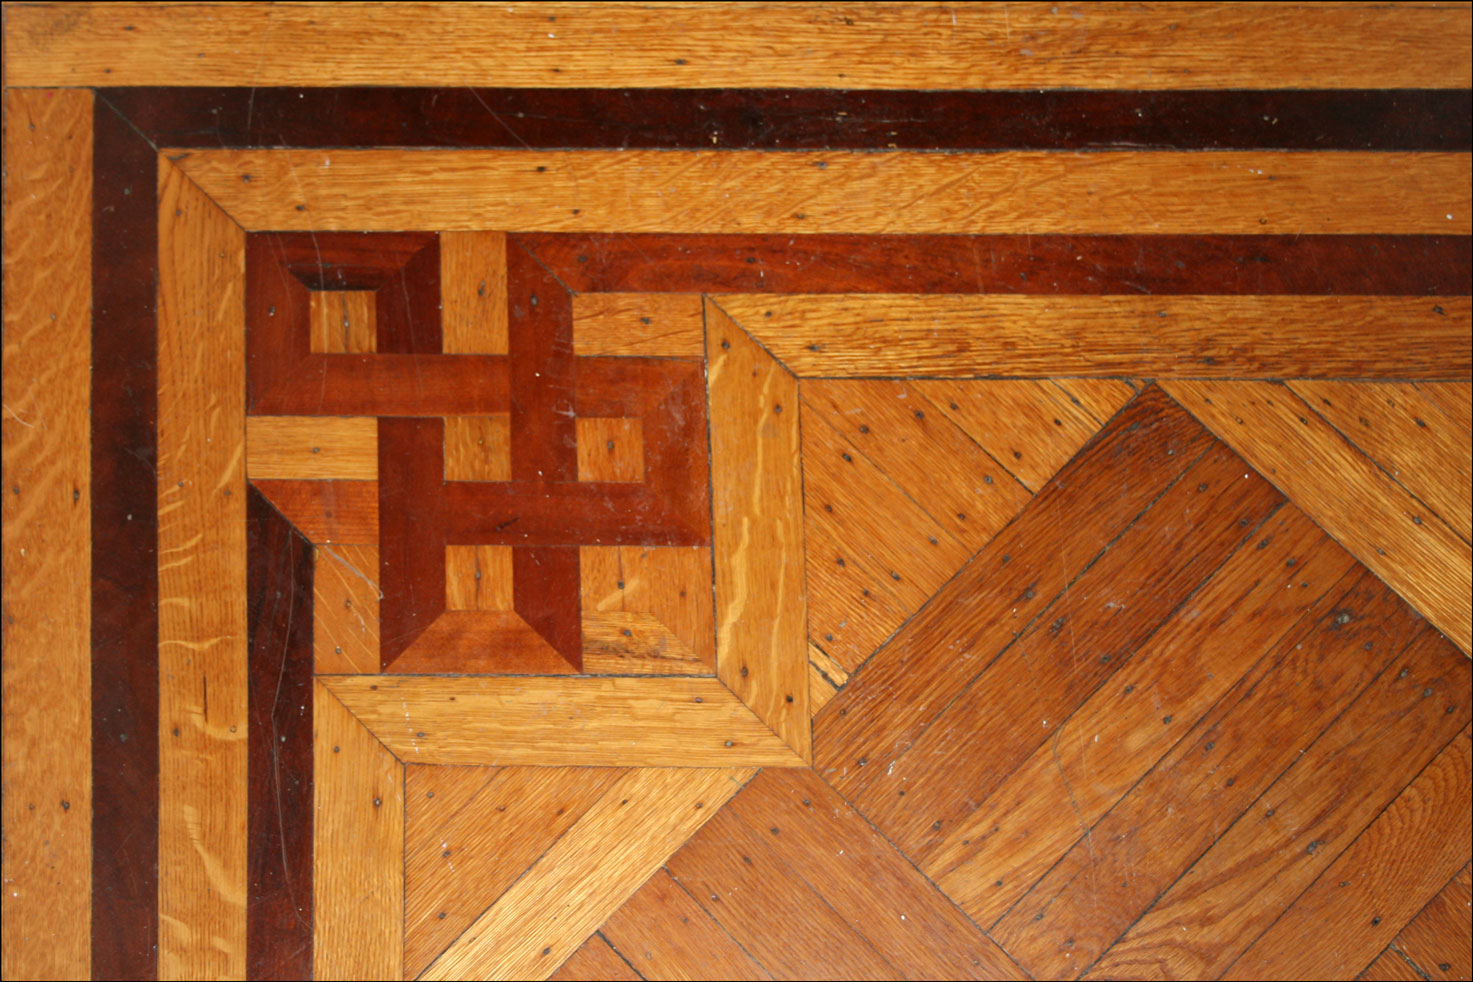 Parquet Floors in the Family Home in Albany, New York